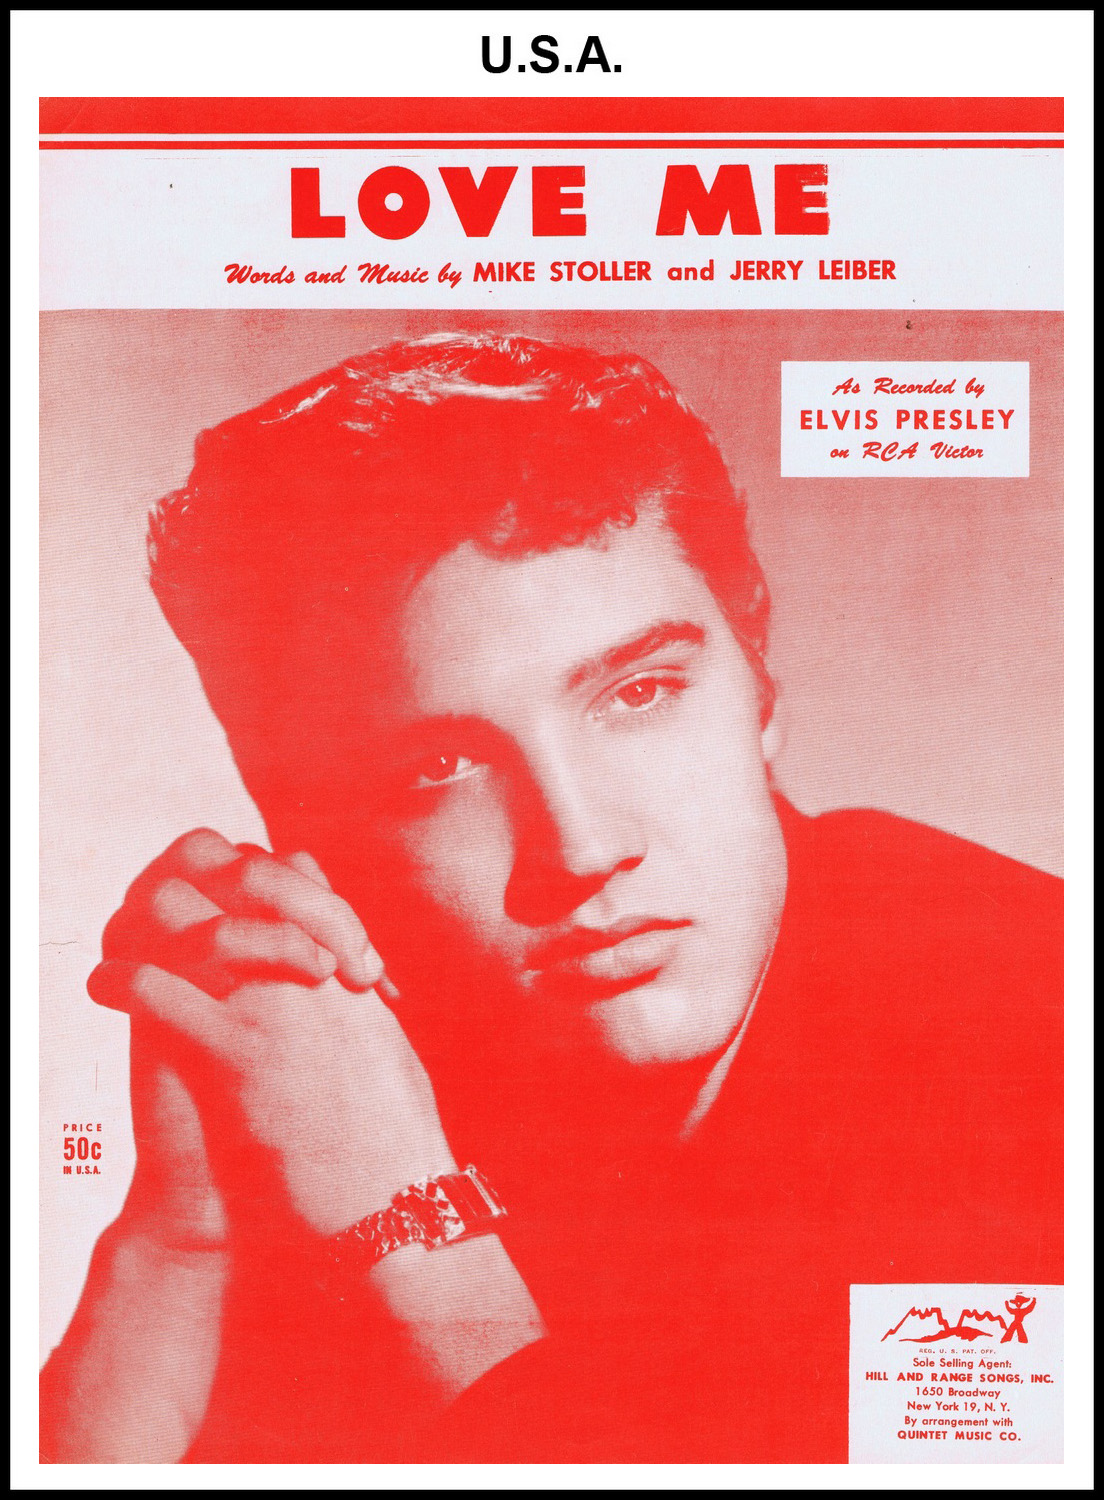 1956 - Love Me (USA 50c) (CHRIS GILES COLLECTION)